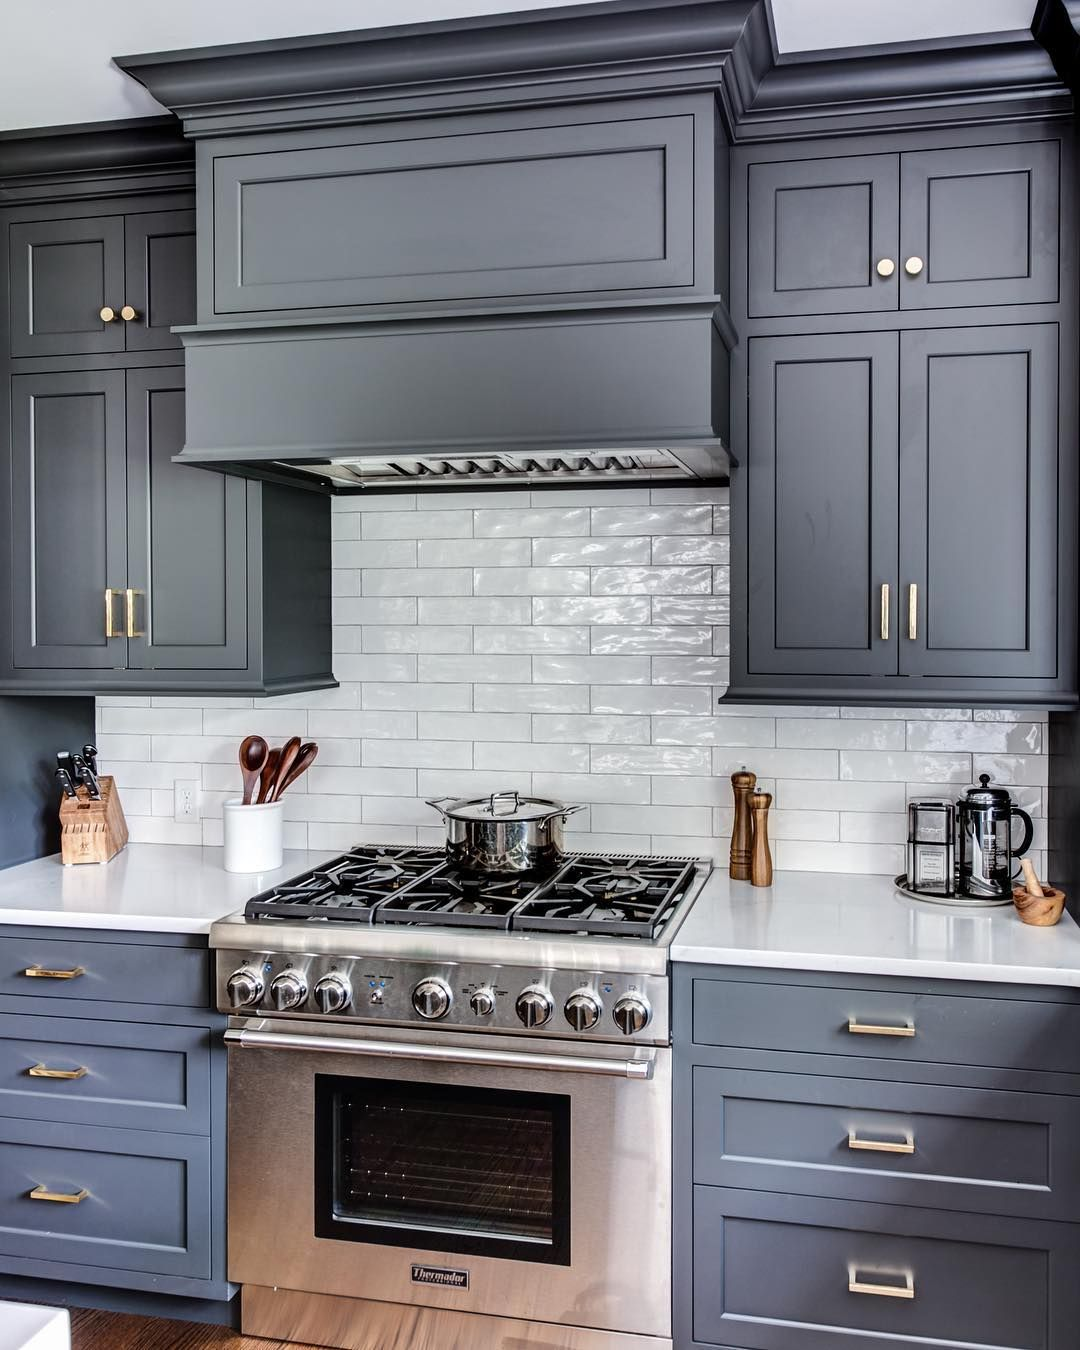 wrought iron by ben moore low sheen new favorite kitchen cabinet color kitchen on farmhouse kitchen cabinets id=54520